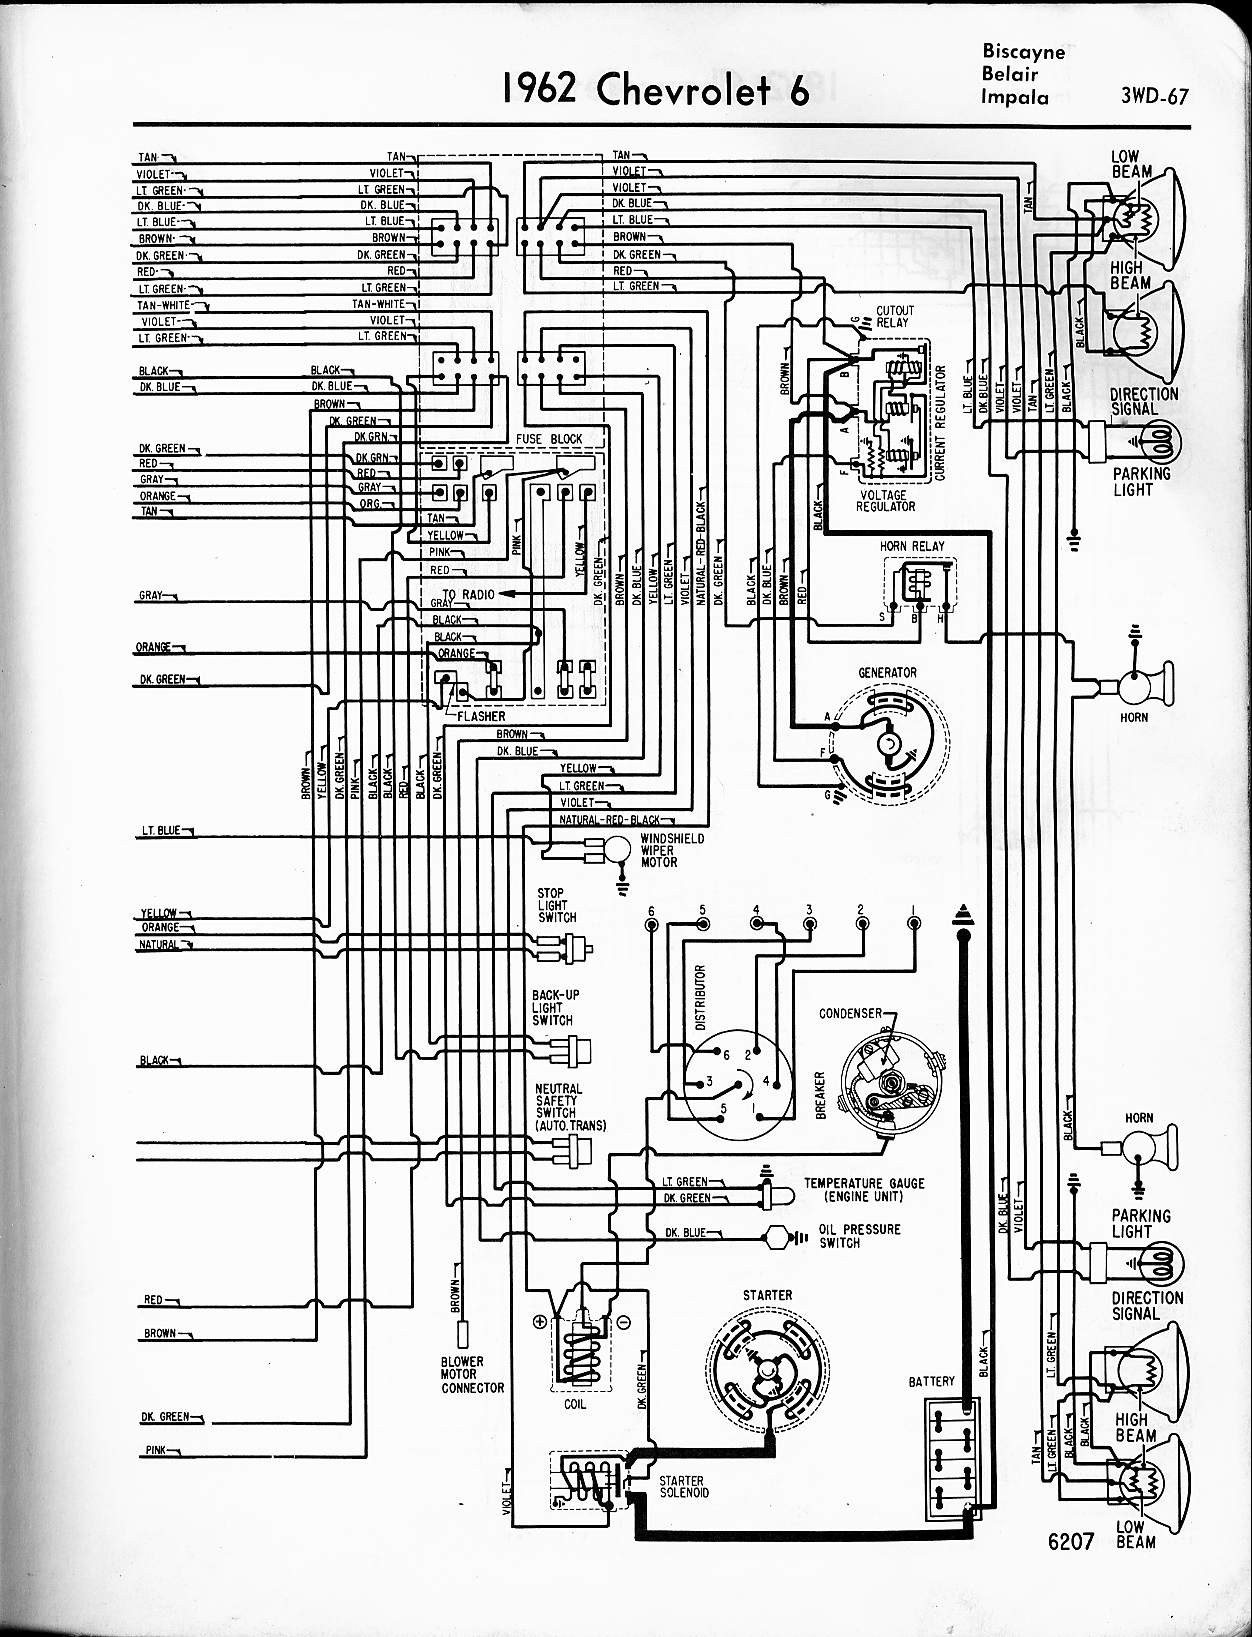 2006 Tacoma Fuse Diagram And Use Guide Troubleshooting Of Mirror Wiring 64 Impala Library